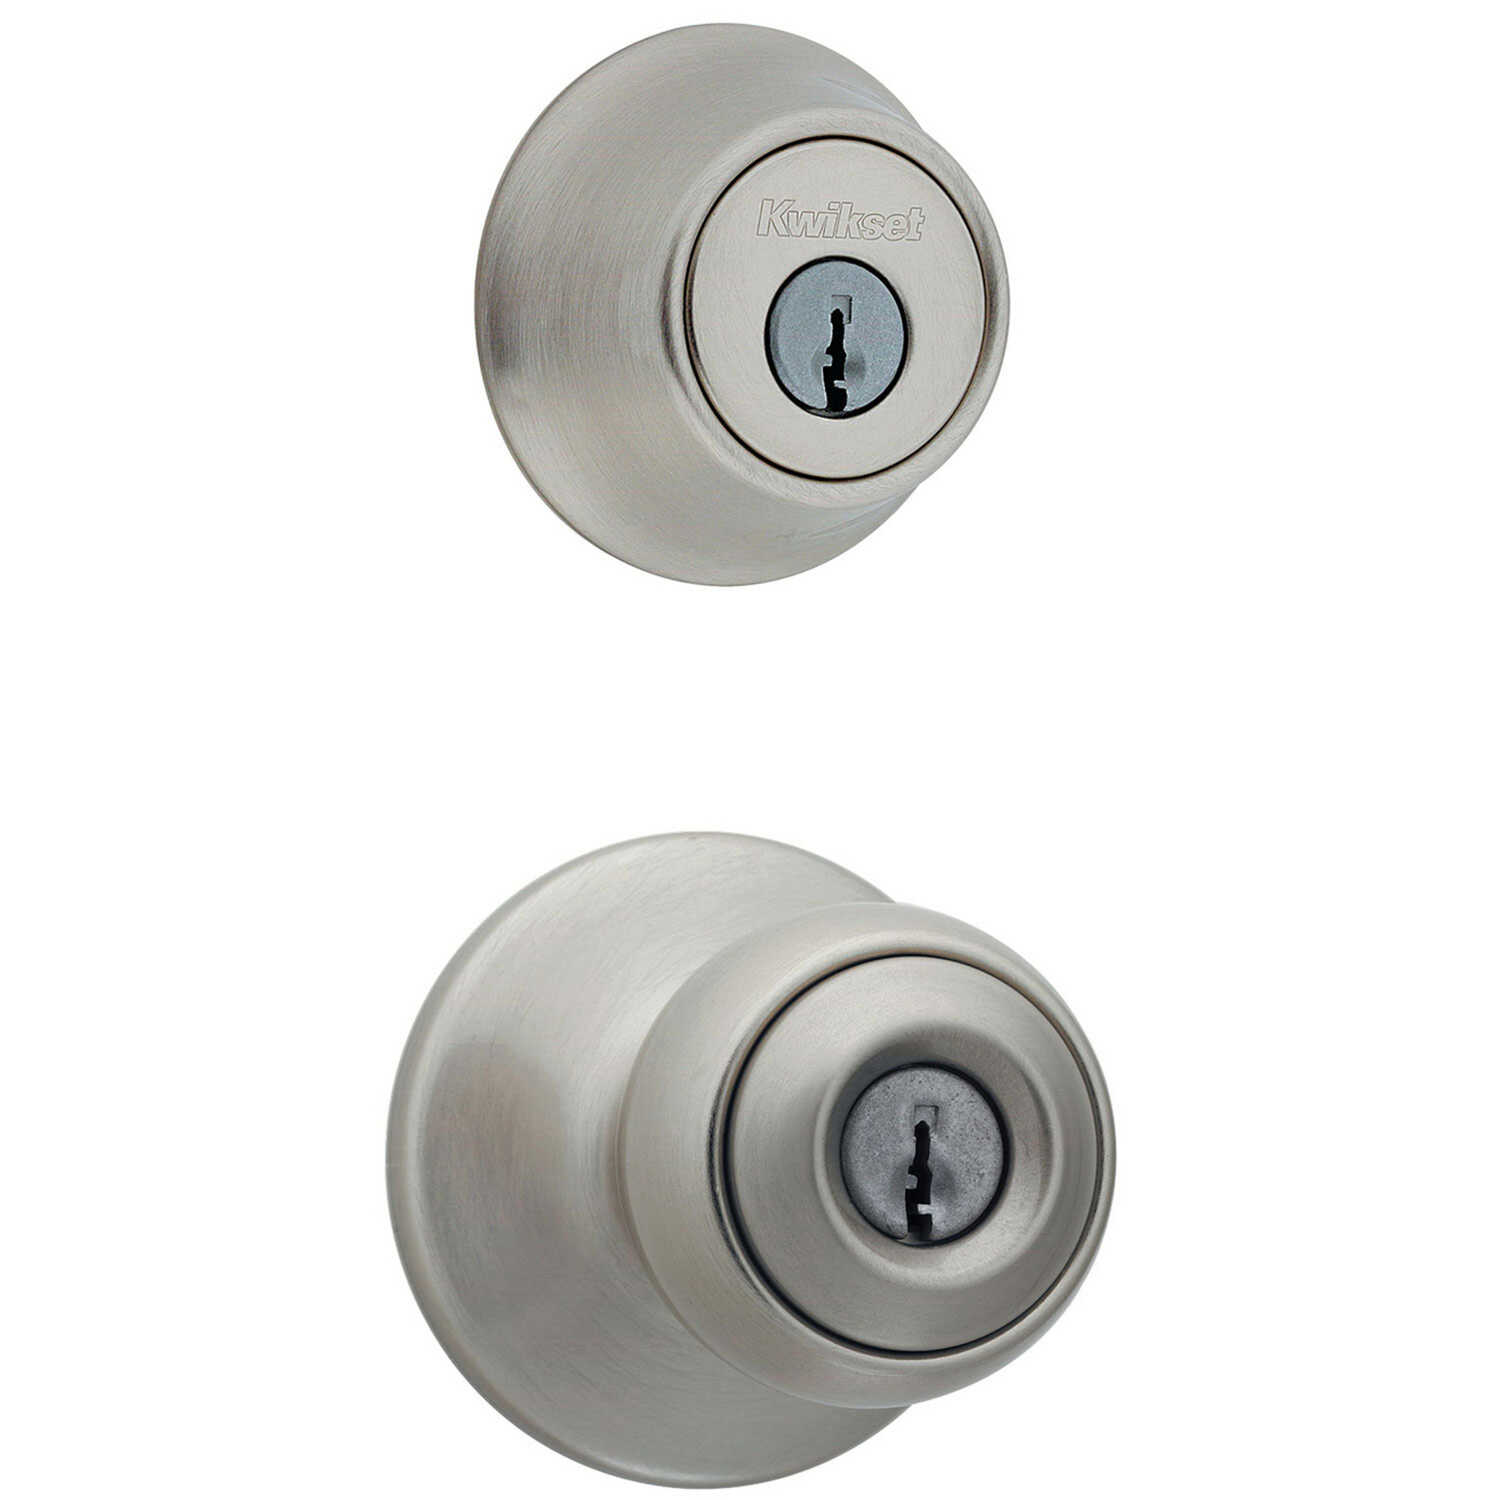 Kwikset  Polo  Satin Nickel  Steel  Entry Lock and Single Cylinder Deadbolt  ANSI/BHMA Grade 3  1-3/